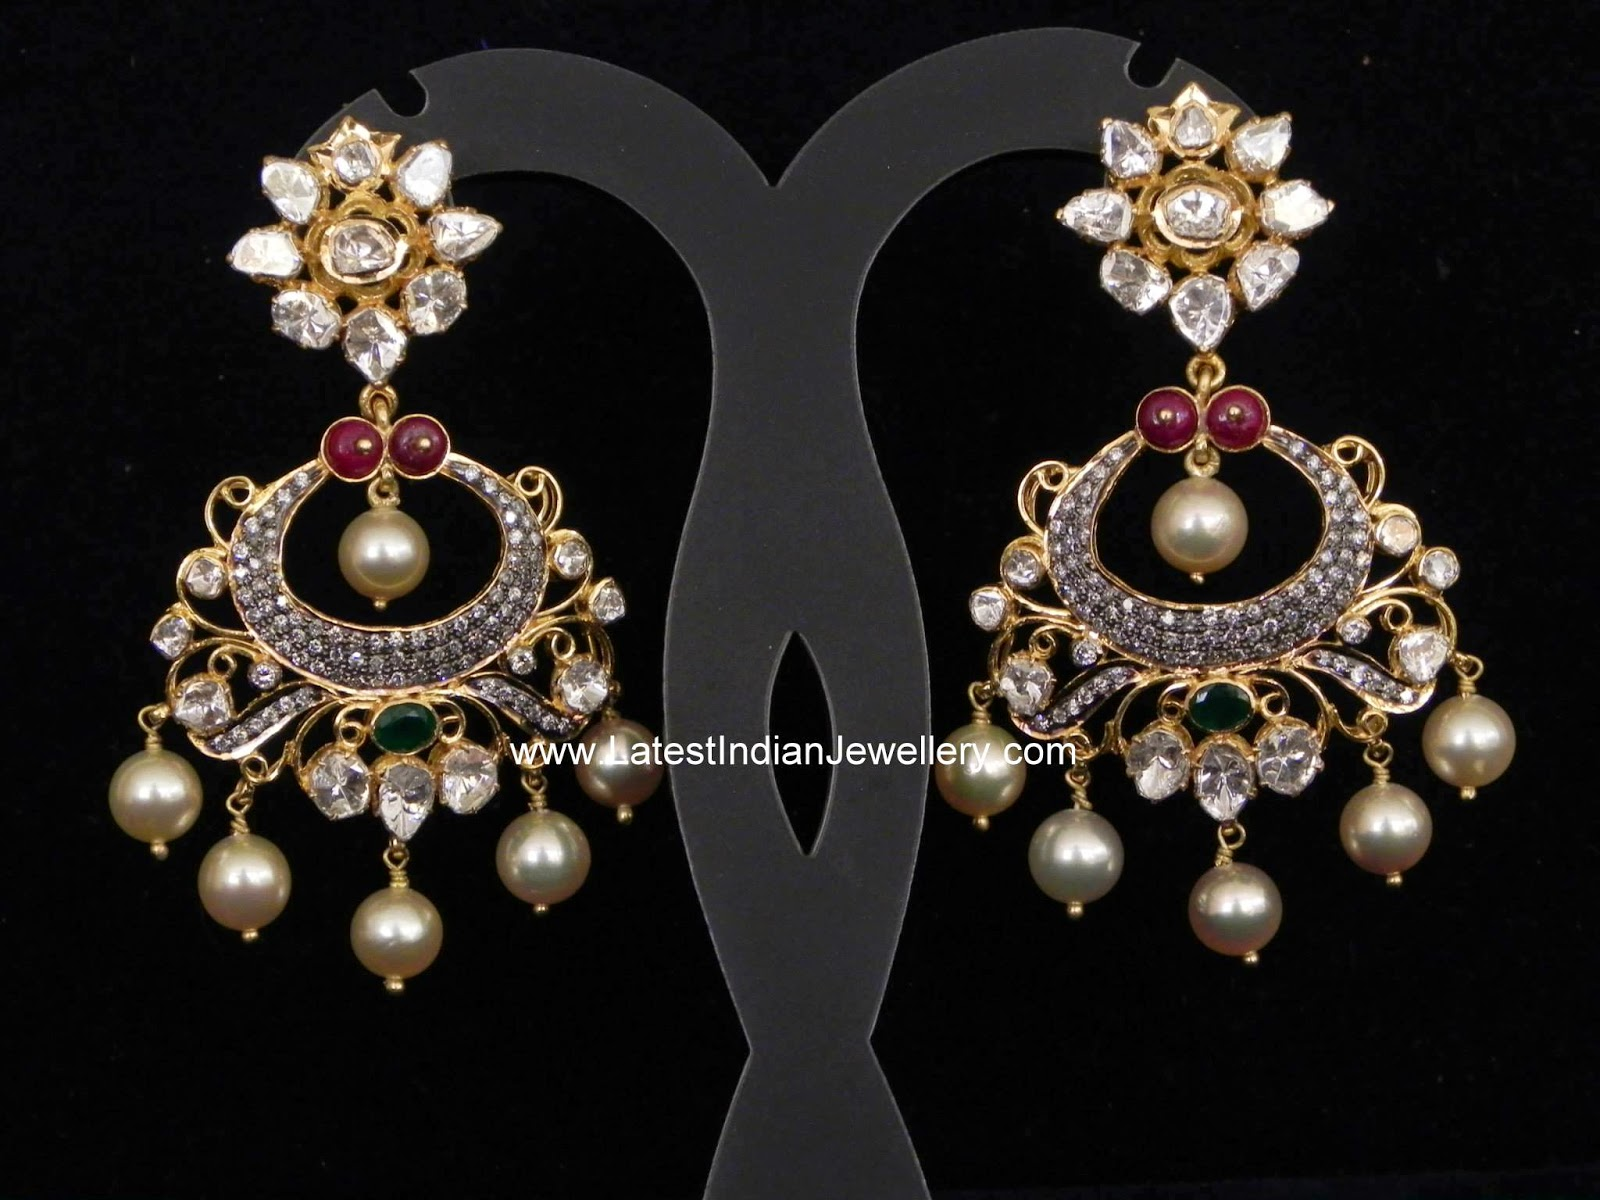 Polki ChandBali earrings